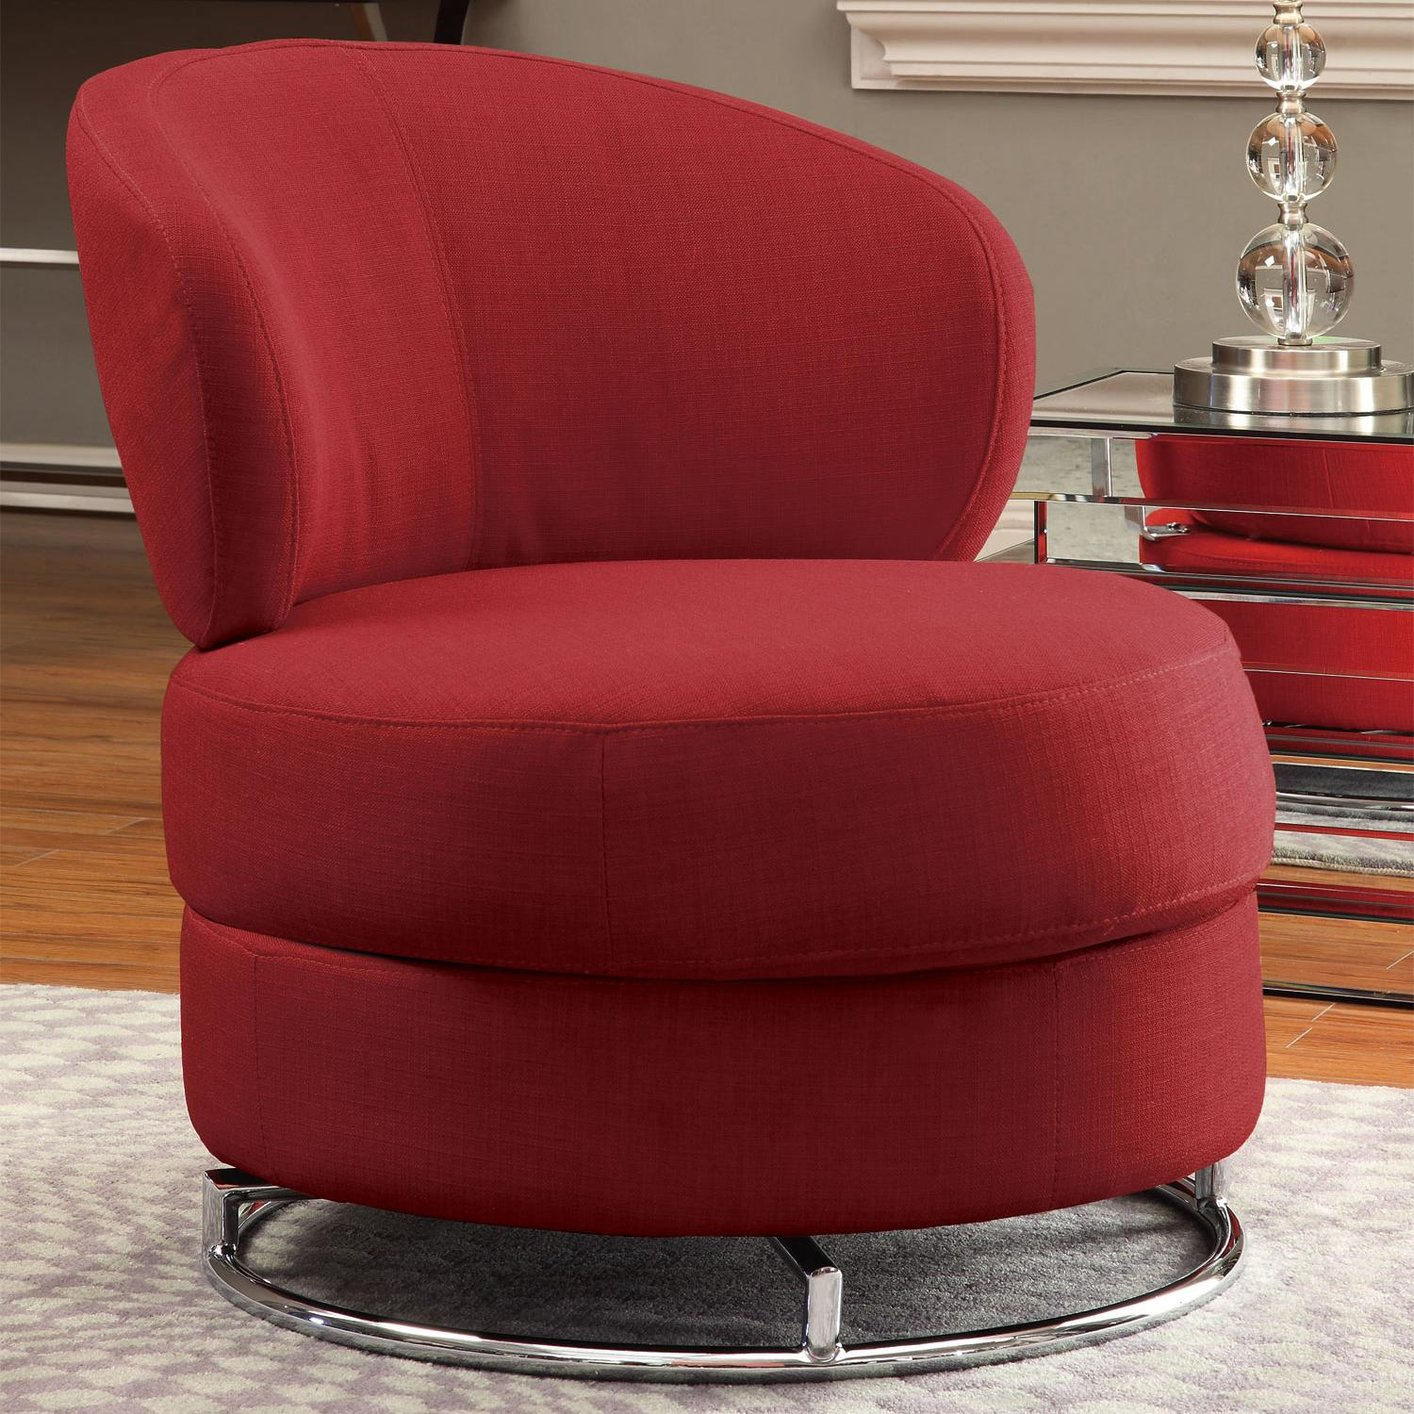 Red swivel chair chairs seating for Furniture 90036